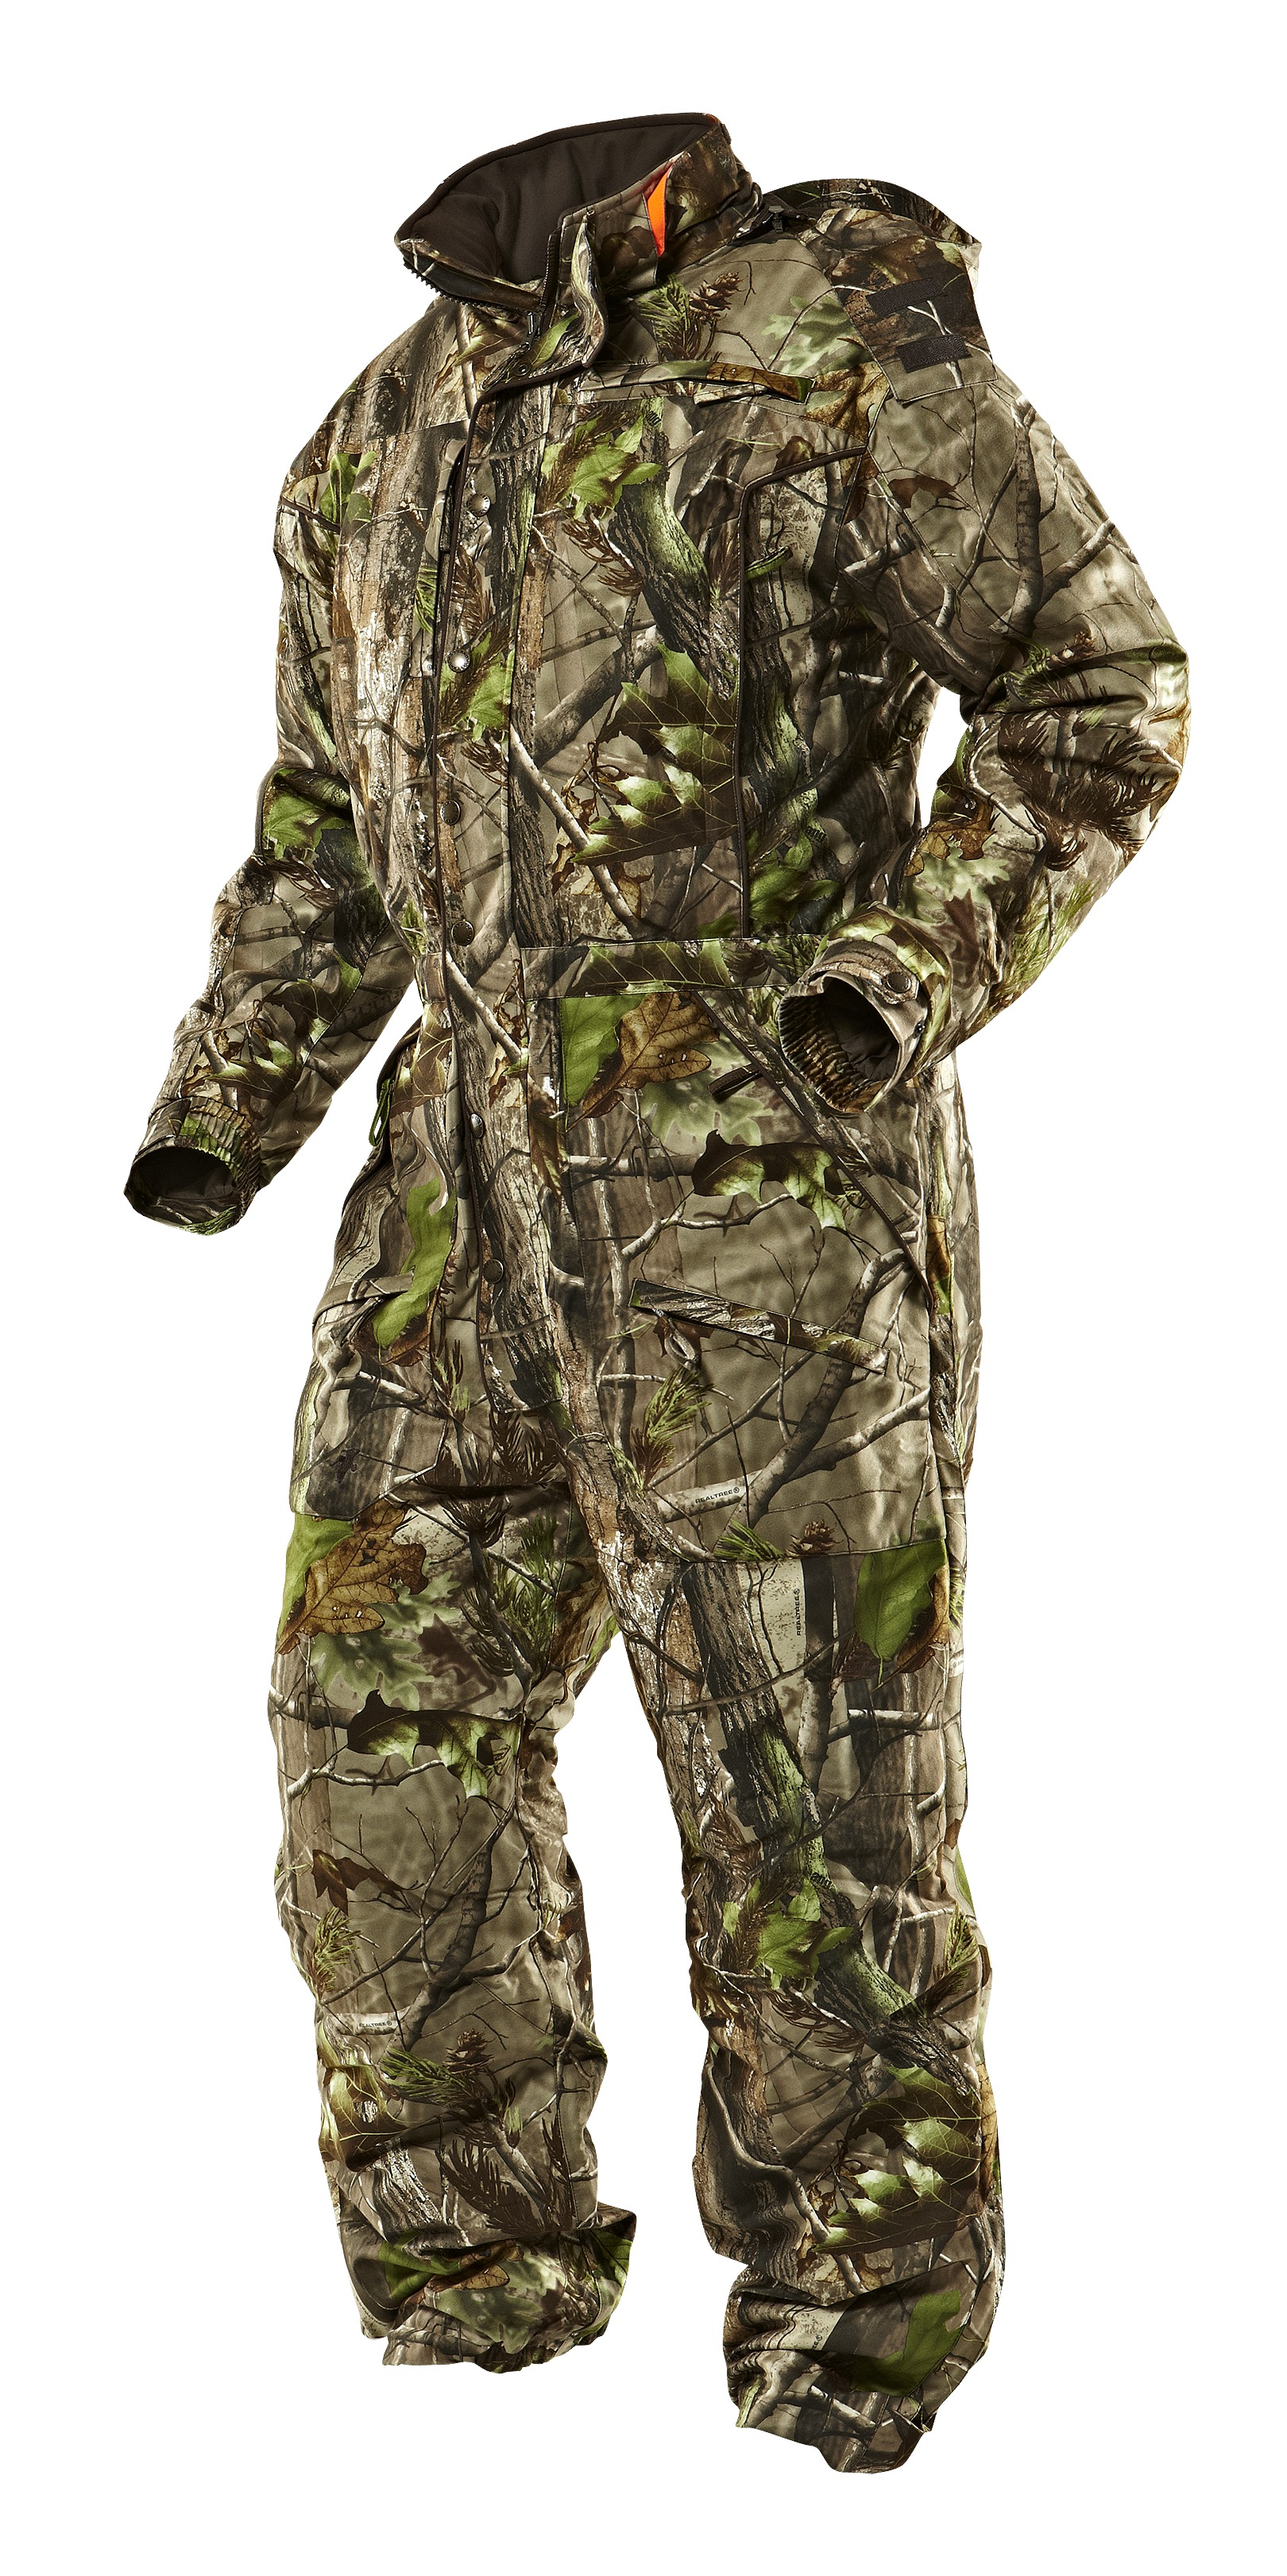 Outthere One Piece Realtree Apg